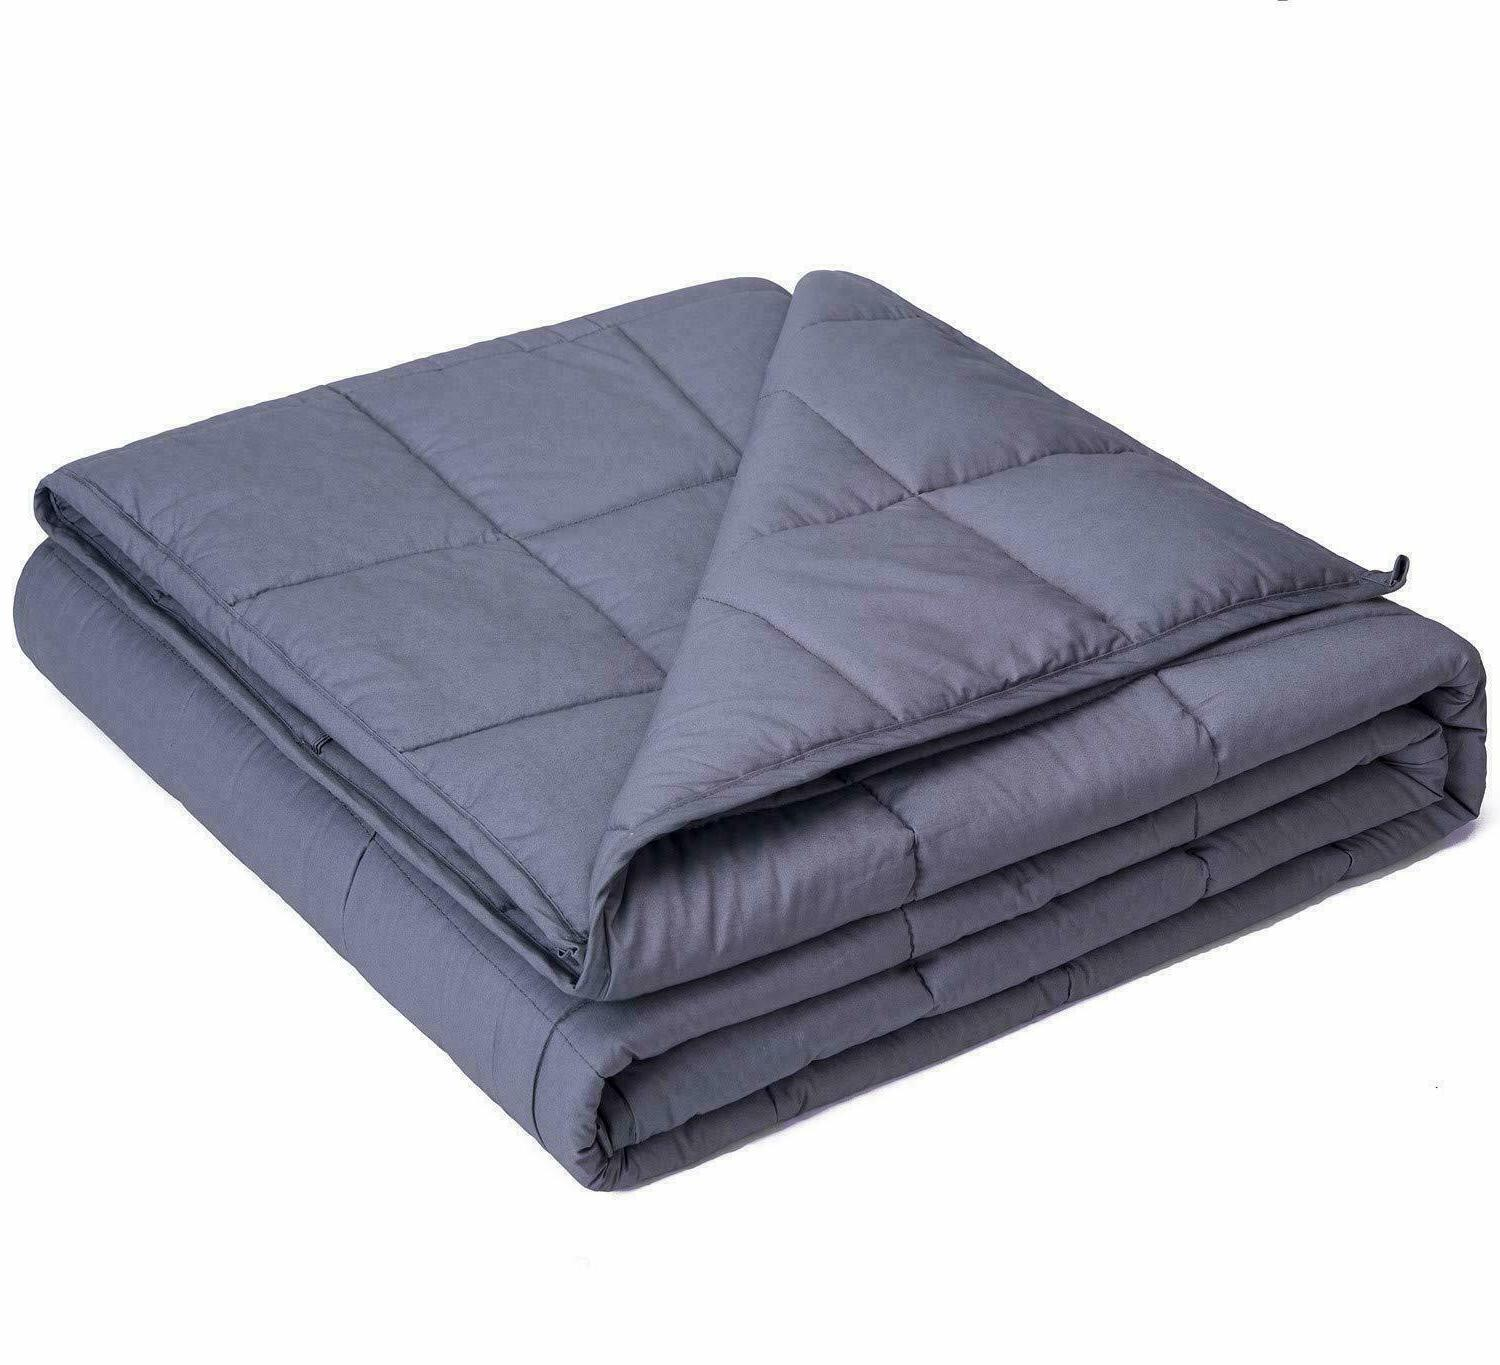 Queen Size Weighted Blanket 60''x80'' 15lbs Reduce Stress, A